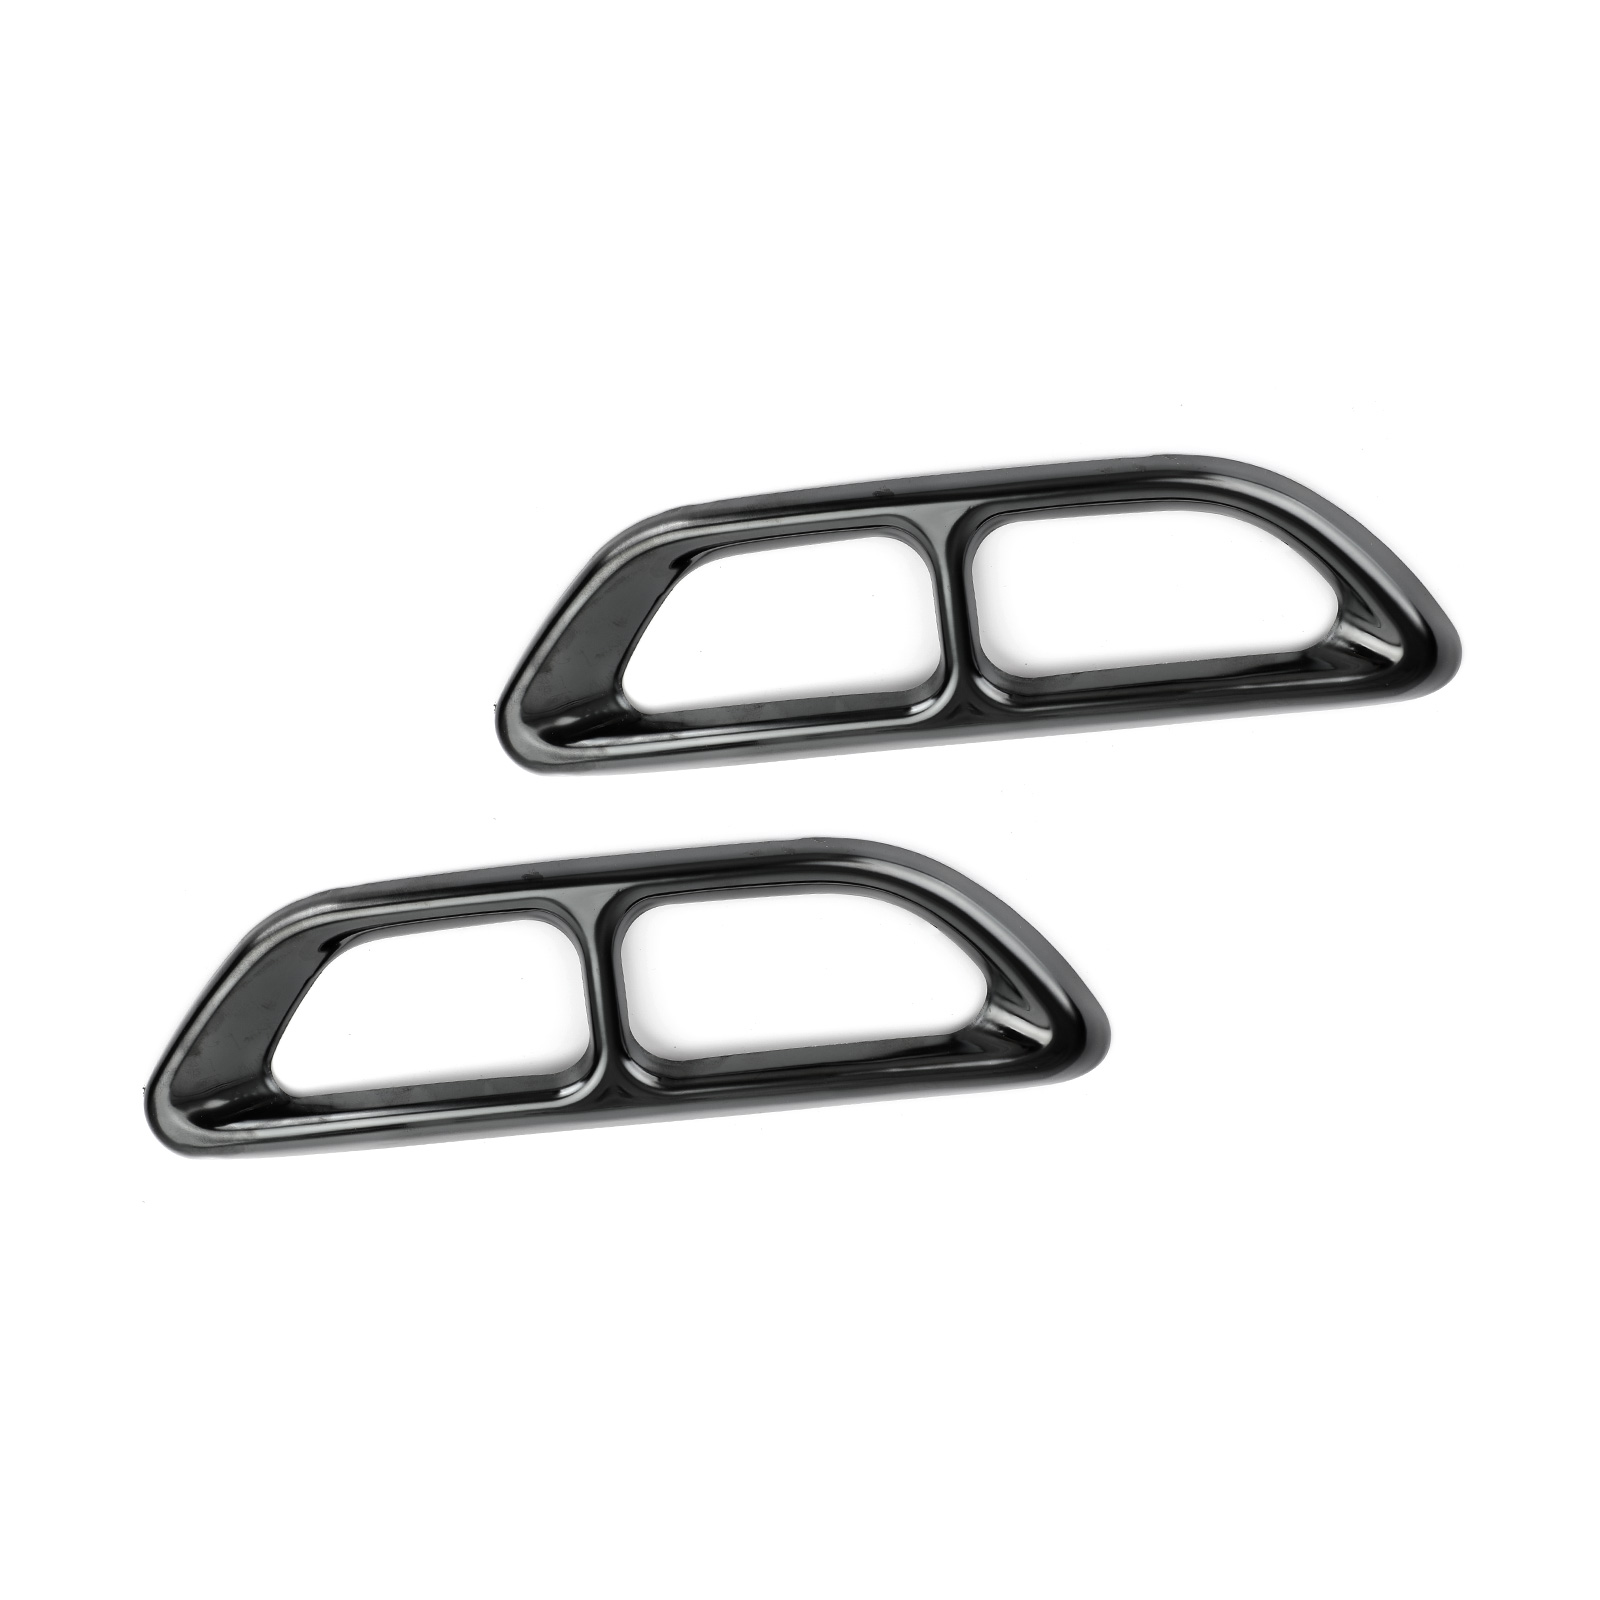 2pcs Black Steel Rear Cylinder Exhaust Pipe Cover Fit For